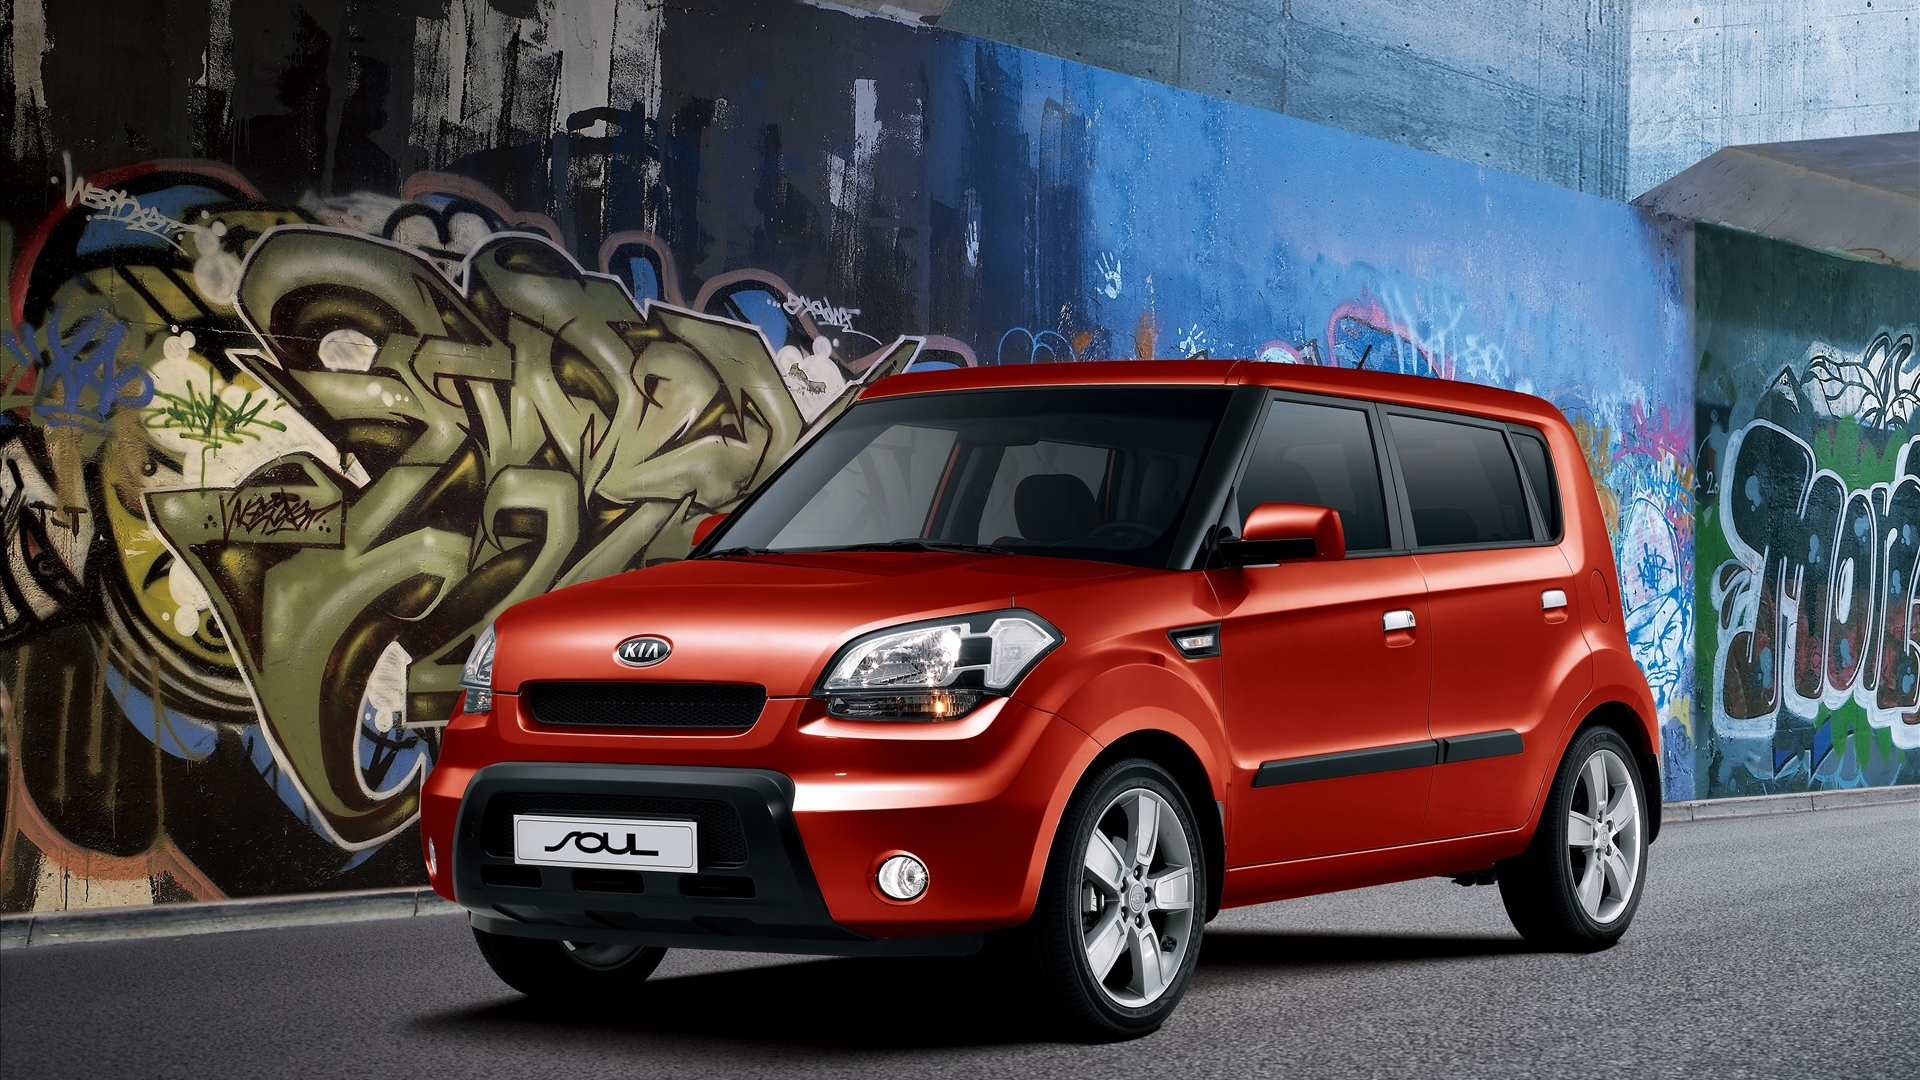 Small Kia car wallpaper